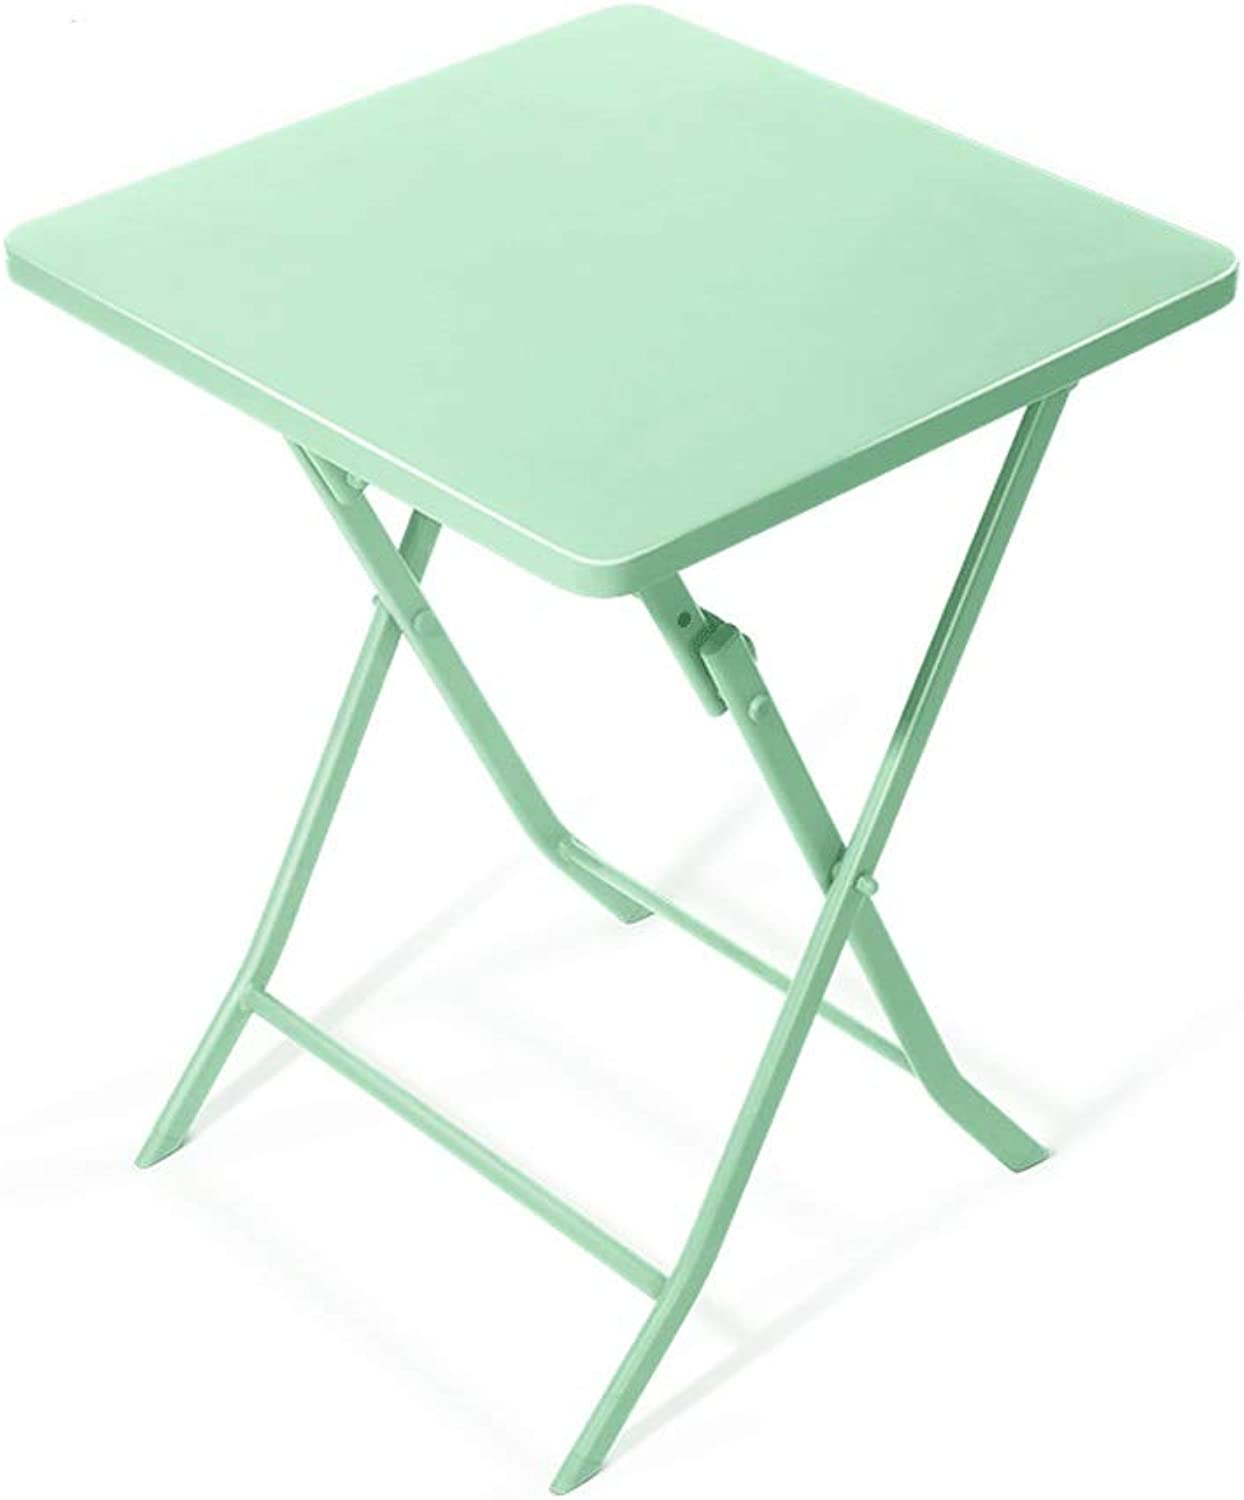 Qing MEI Simple Foldable Wrought Iron Square Table Small Size Wrought Iron Dining Table Bedroom Coffee Table Laptop Table (color   Light Cyan)